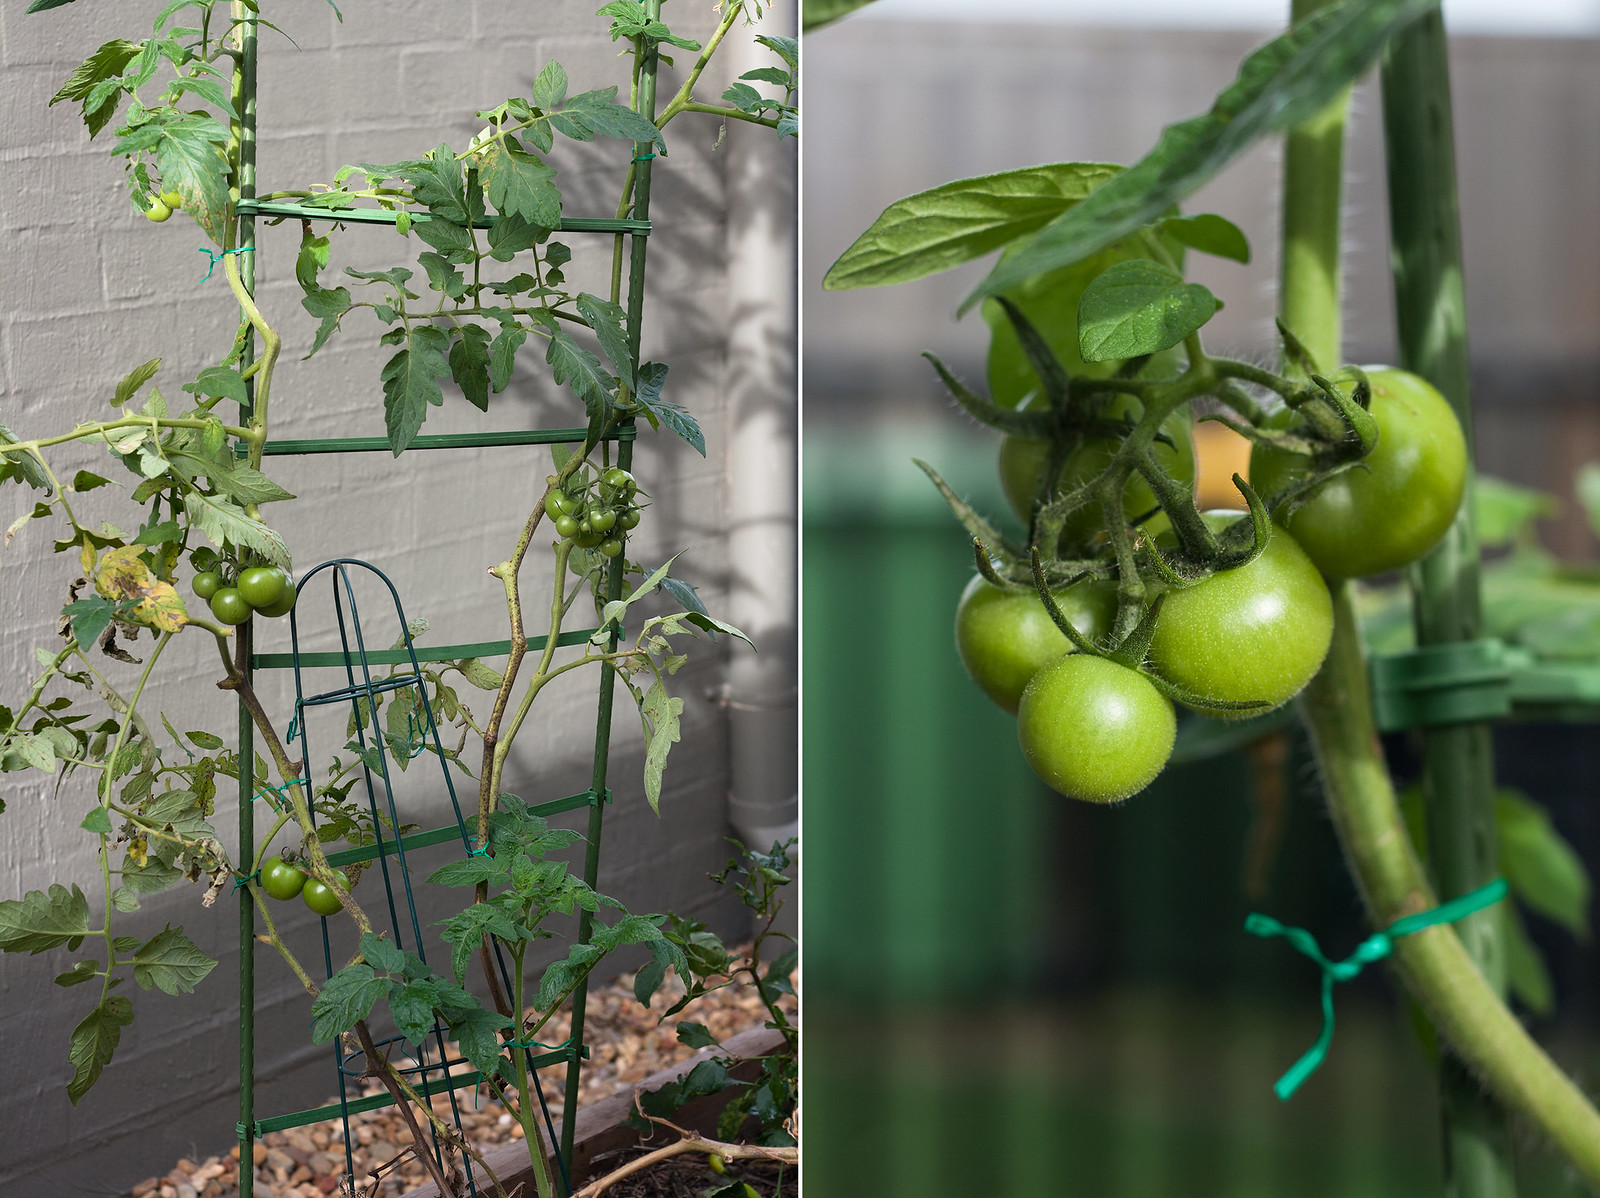 6 month catch-up - Tomato plant growing on trainer and close up